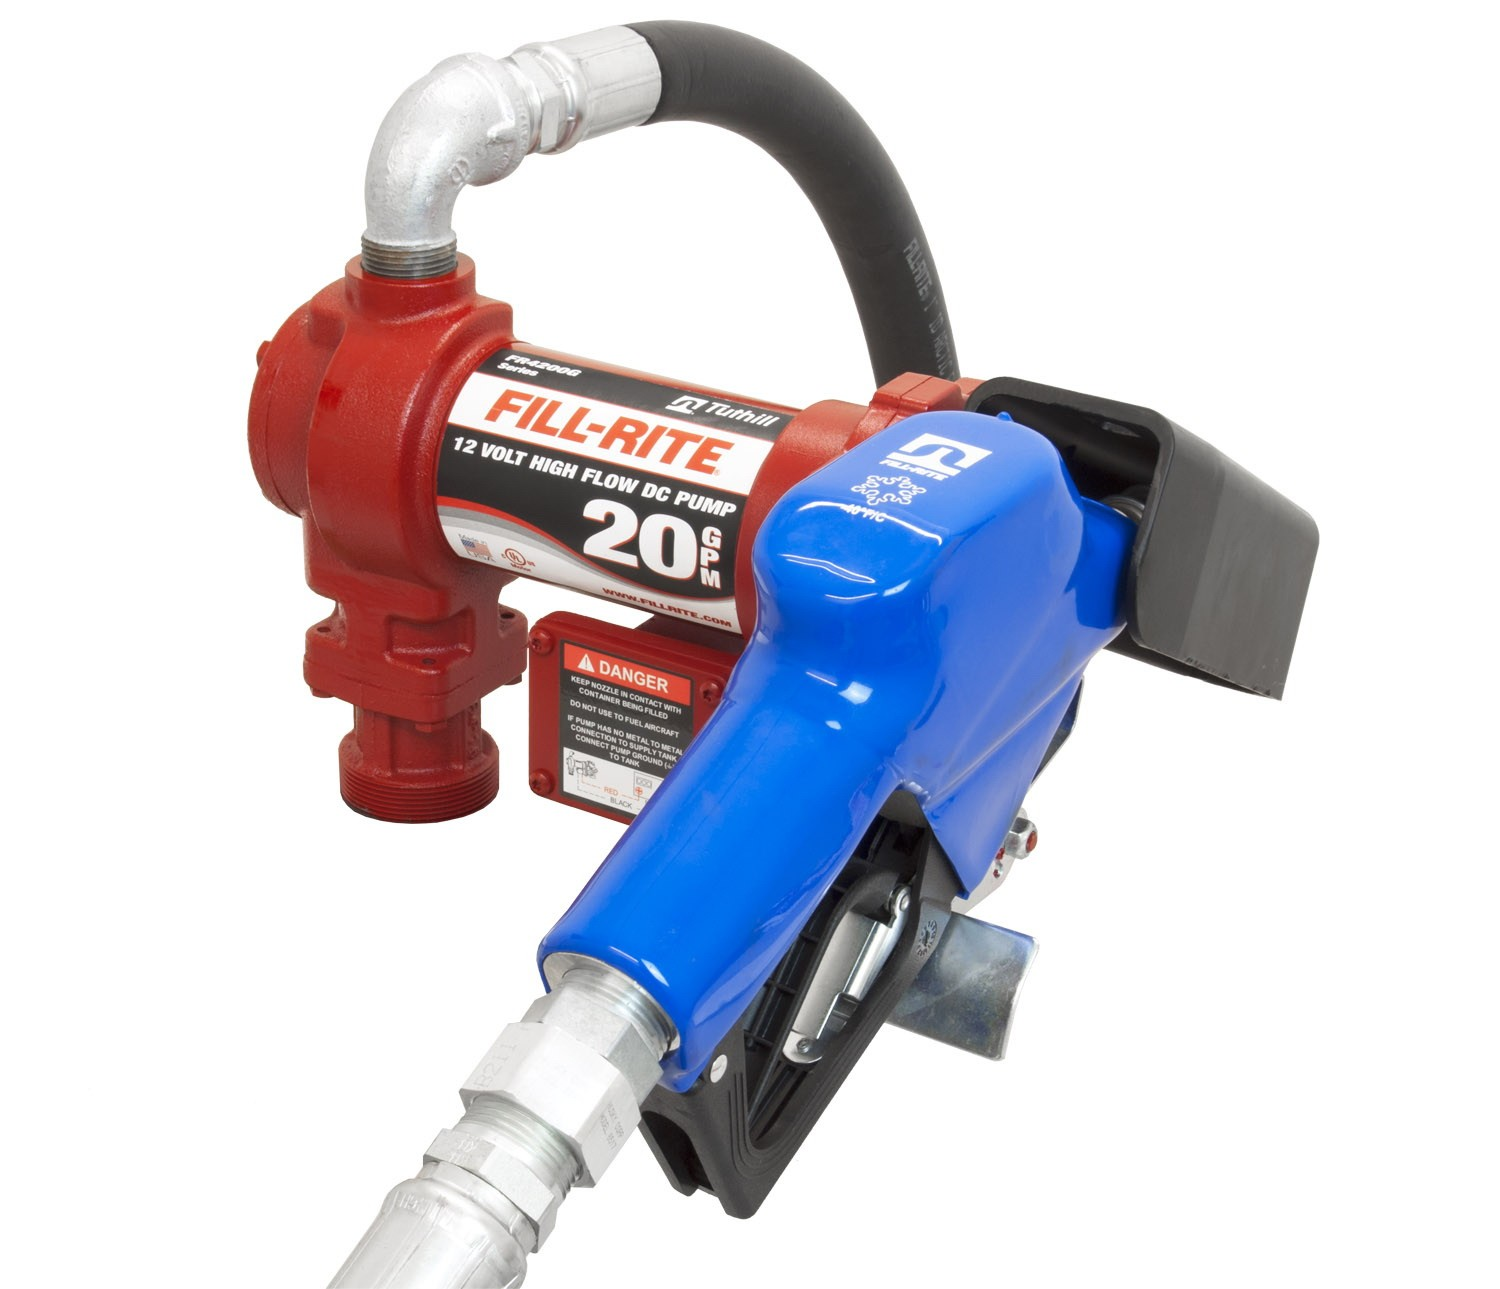 "Fill-Rite FR4210GARC 12V DC High Flow Arctic Pump w/Swivel w/1"" Automatic Nozzle (20 GPM)"